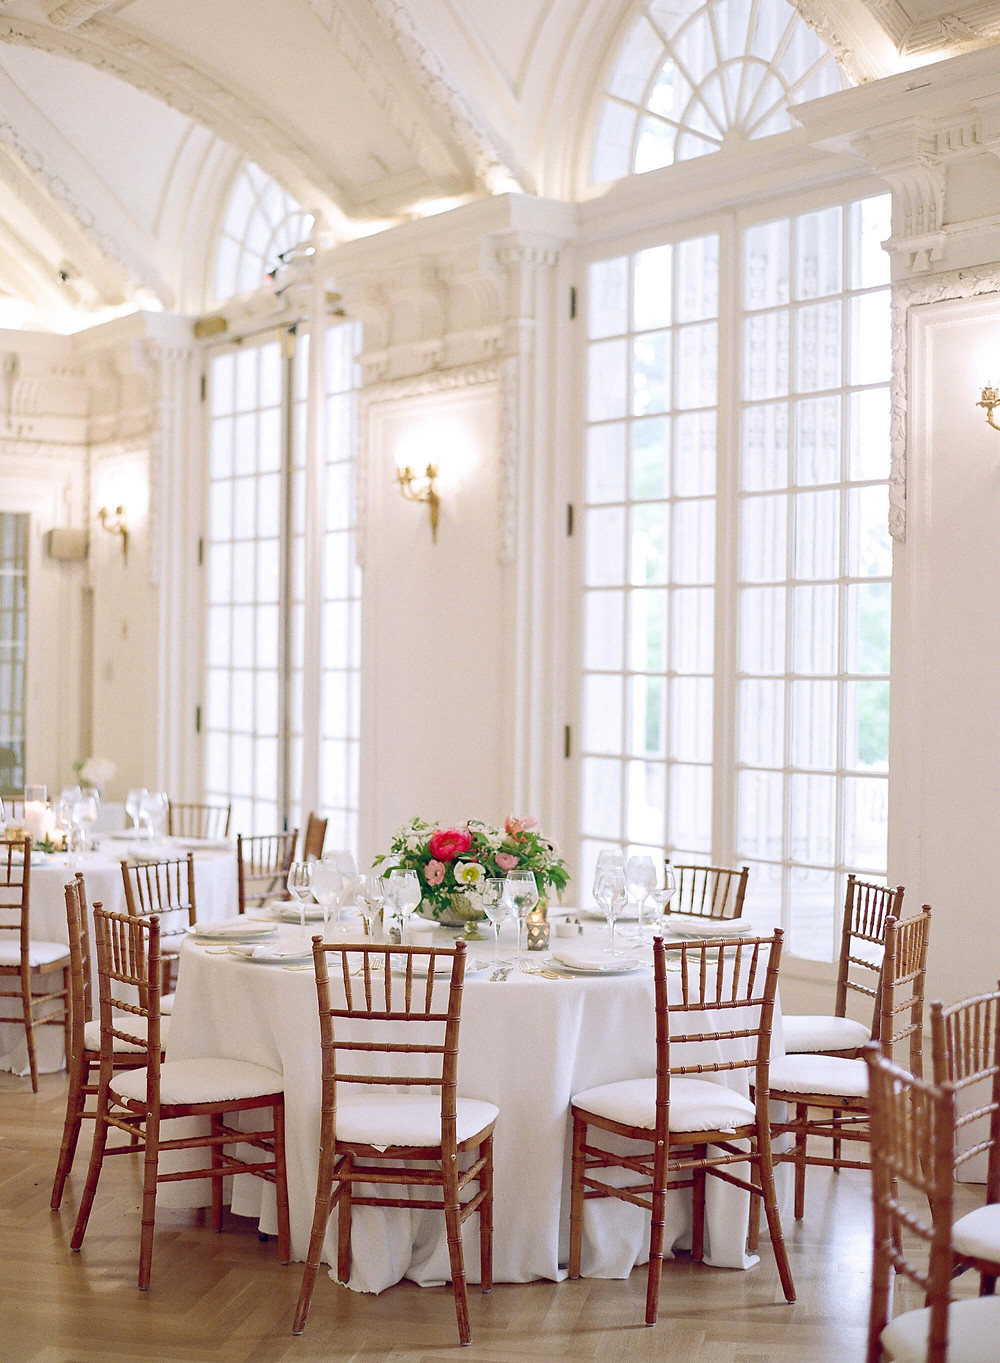 DAR constitution hall pink wedding